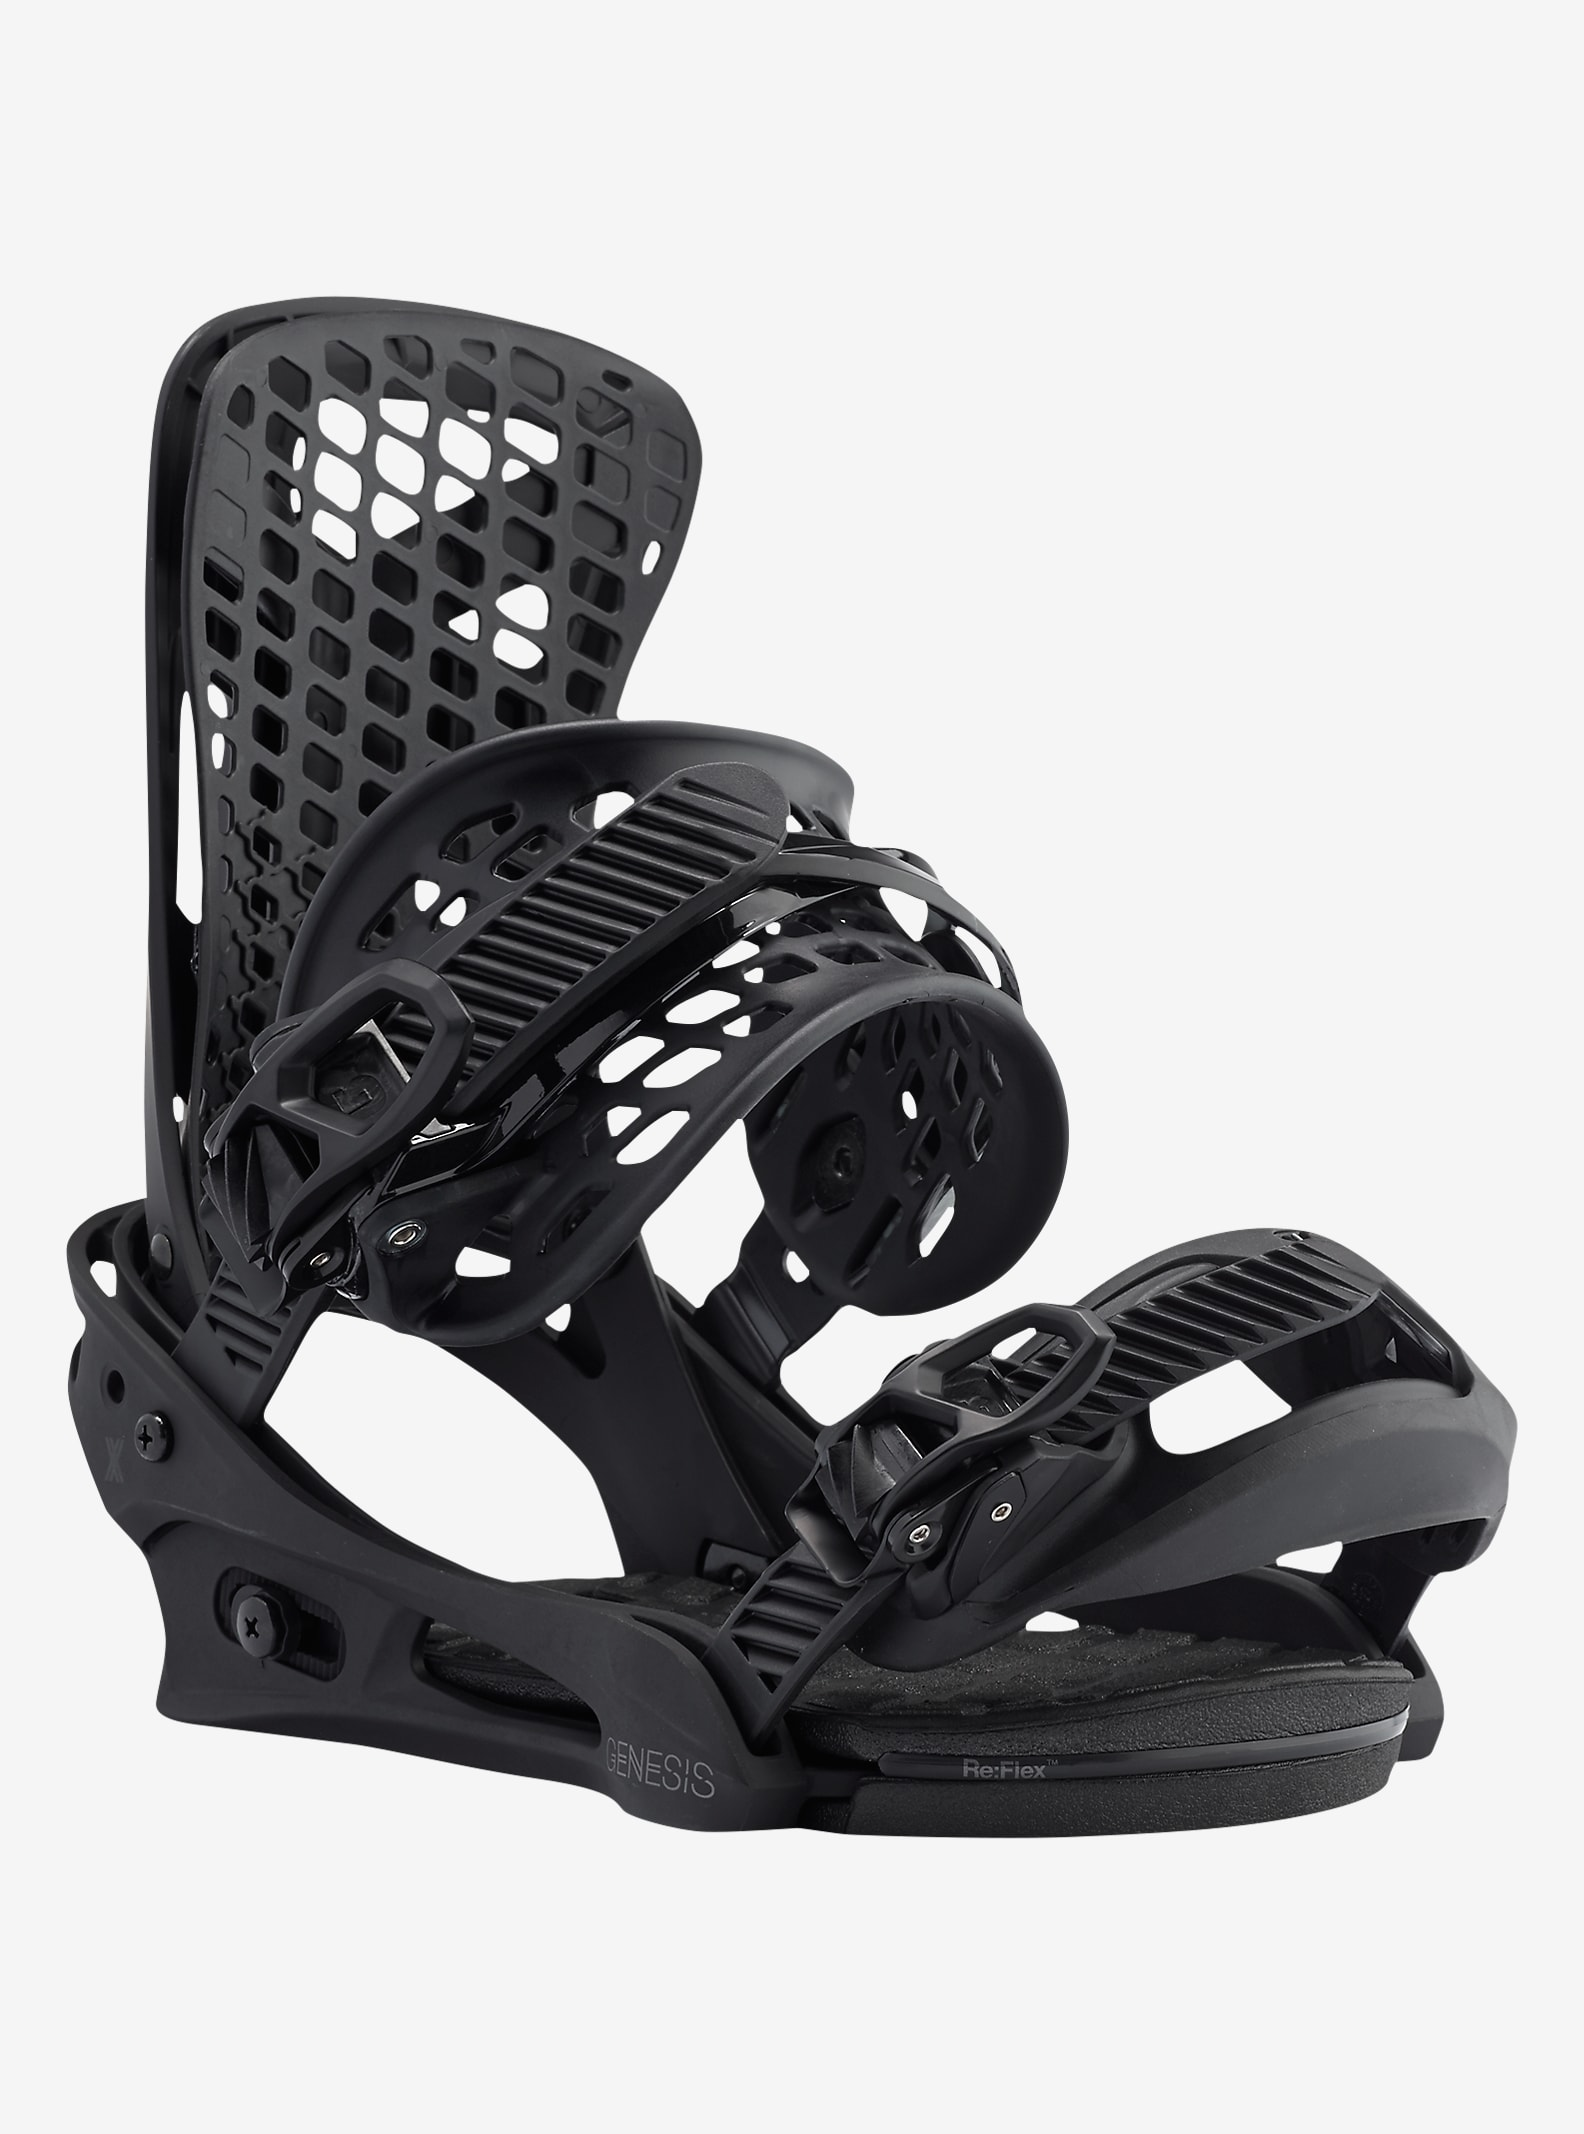 Burton Genesis X Snowboard Binding shown in Black